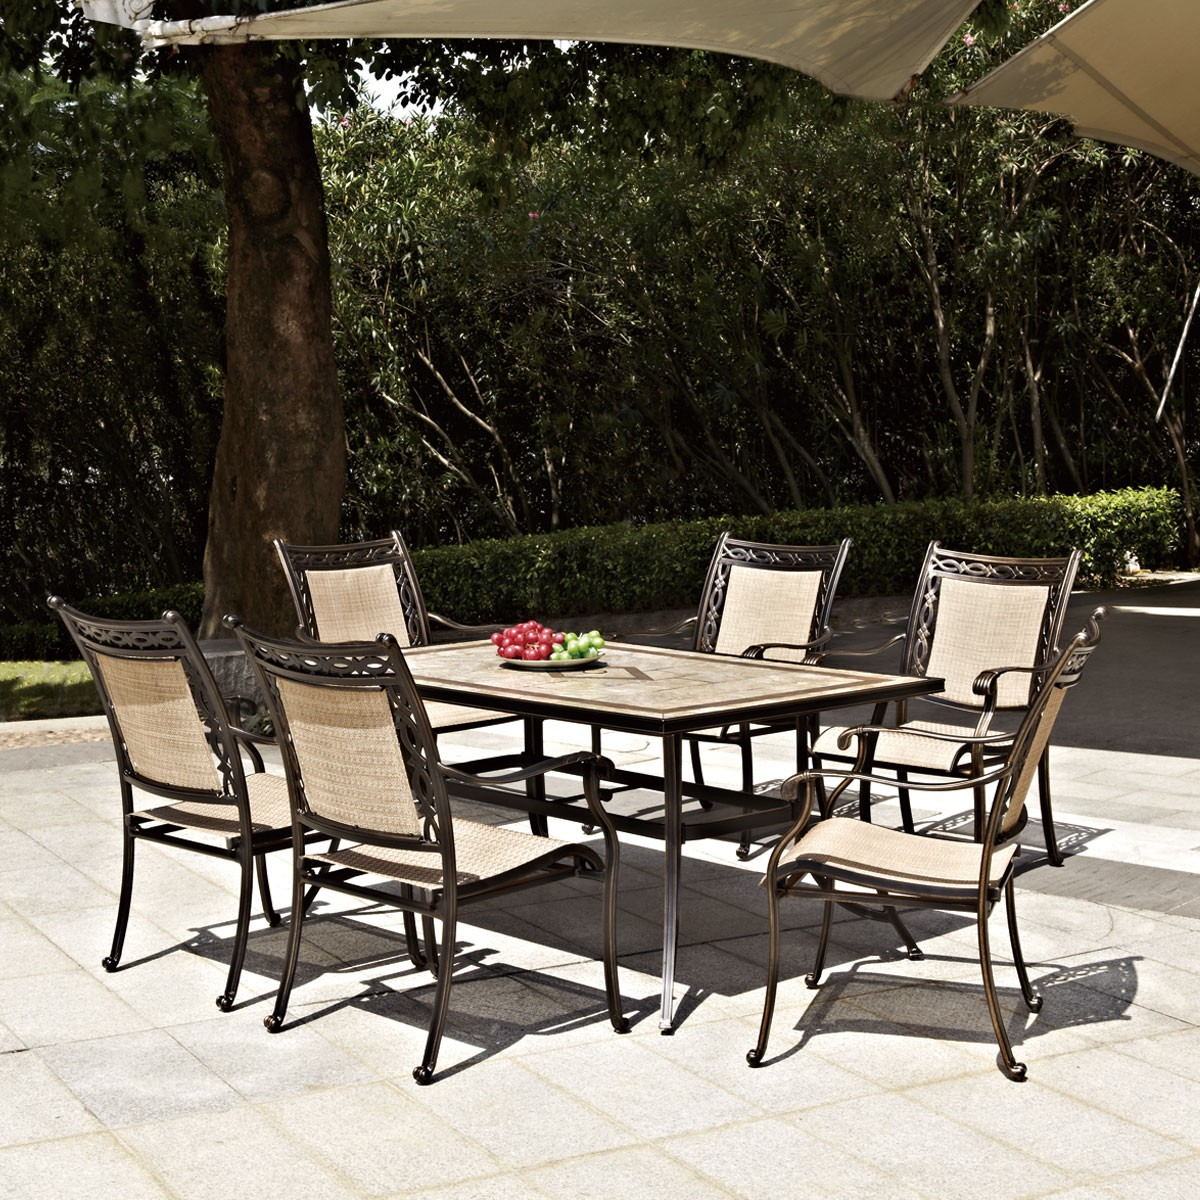 7 Pieces Dinning Set: Dining Table, 6 Chairs (LLS-CA008)